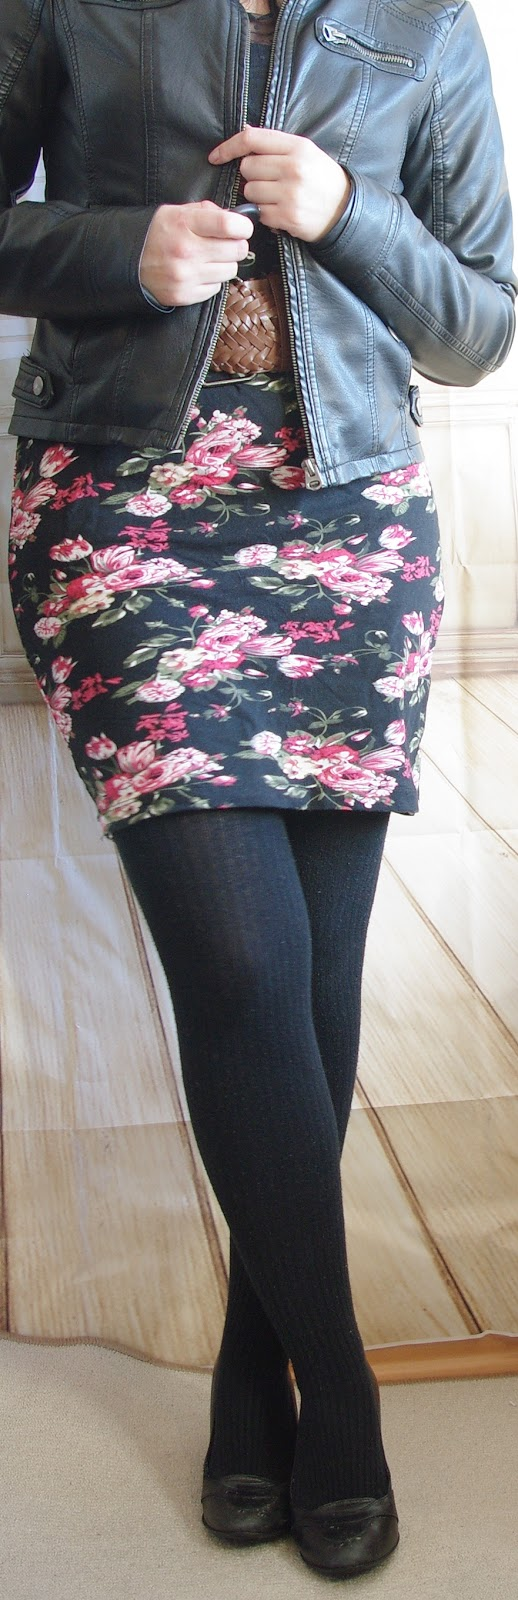 Floral dress in Winter, Tights, Leather Jacket Outfit